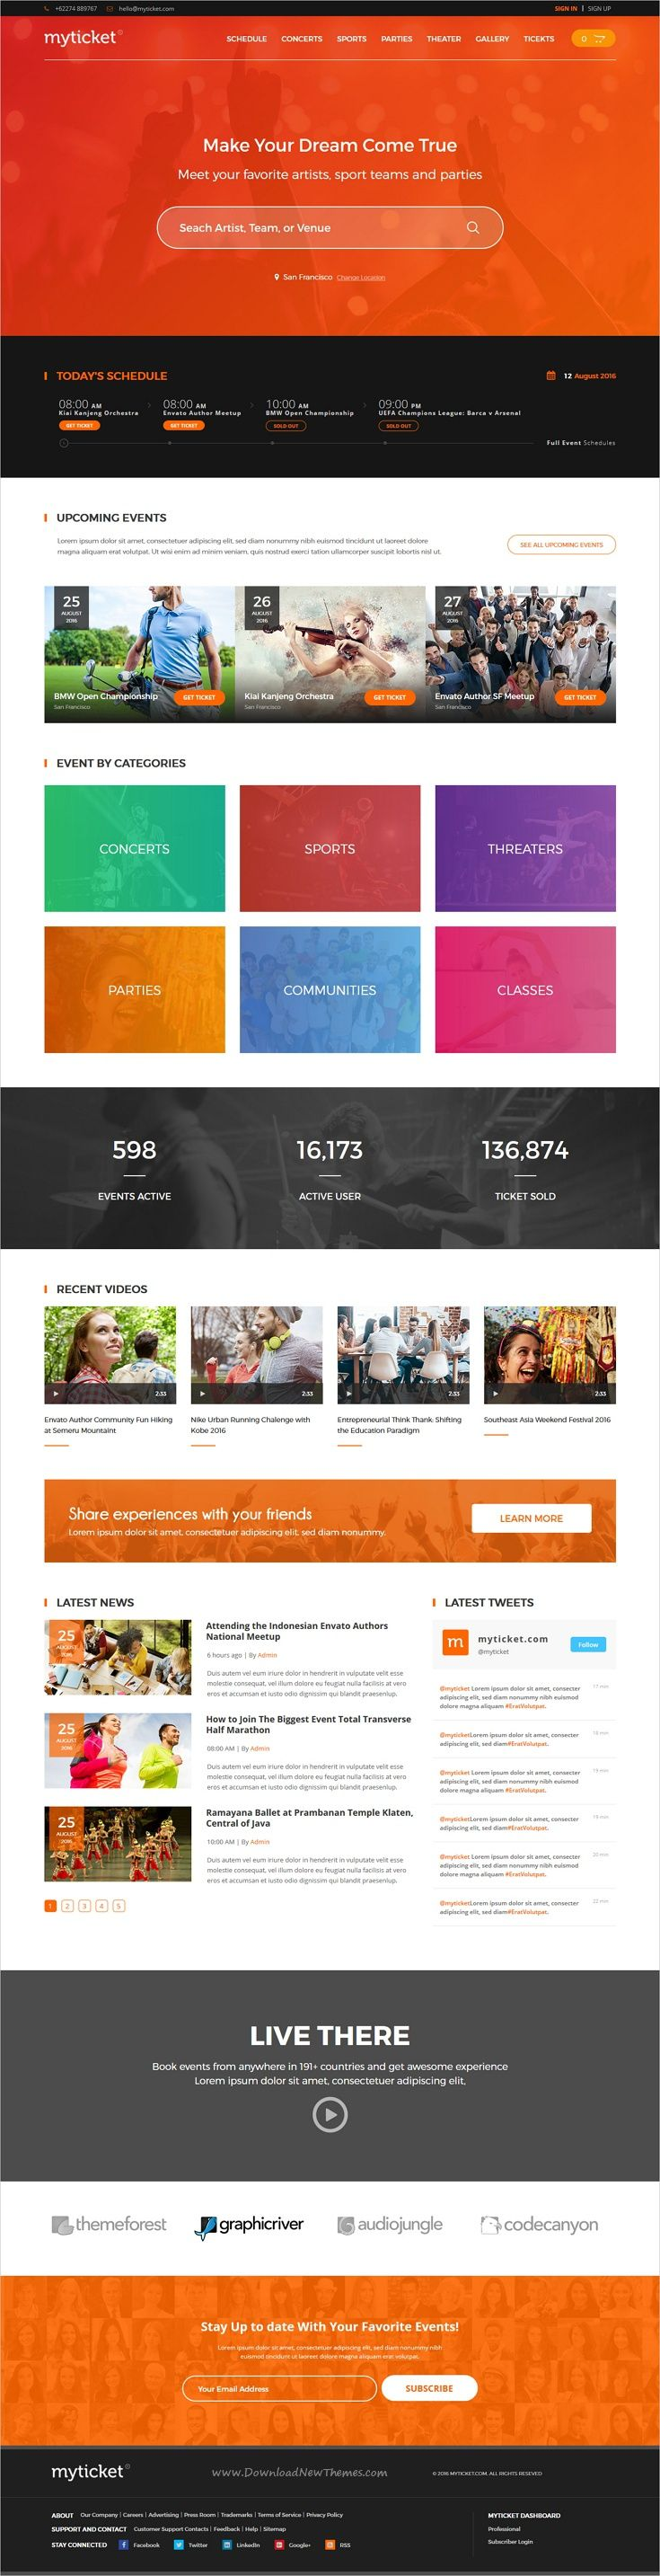 MyTicket is clean and modern design responsive #HTML5 template for #event #ticket and hall #reservation service website download now > https://themeforest.net/item/myticket-event-ticket-hall-reservation-html5-template/19779762?ref=Datasata